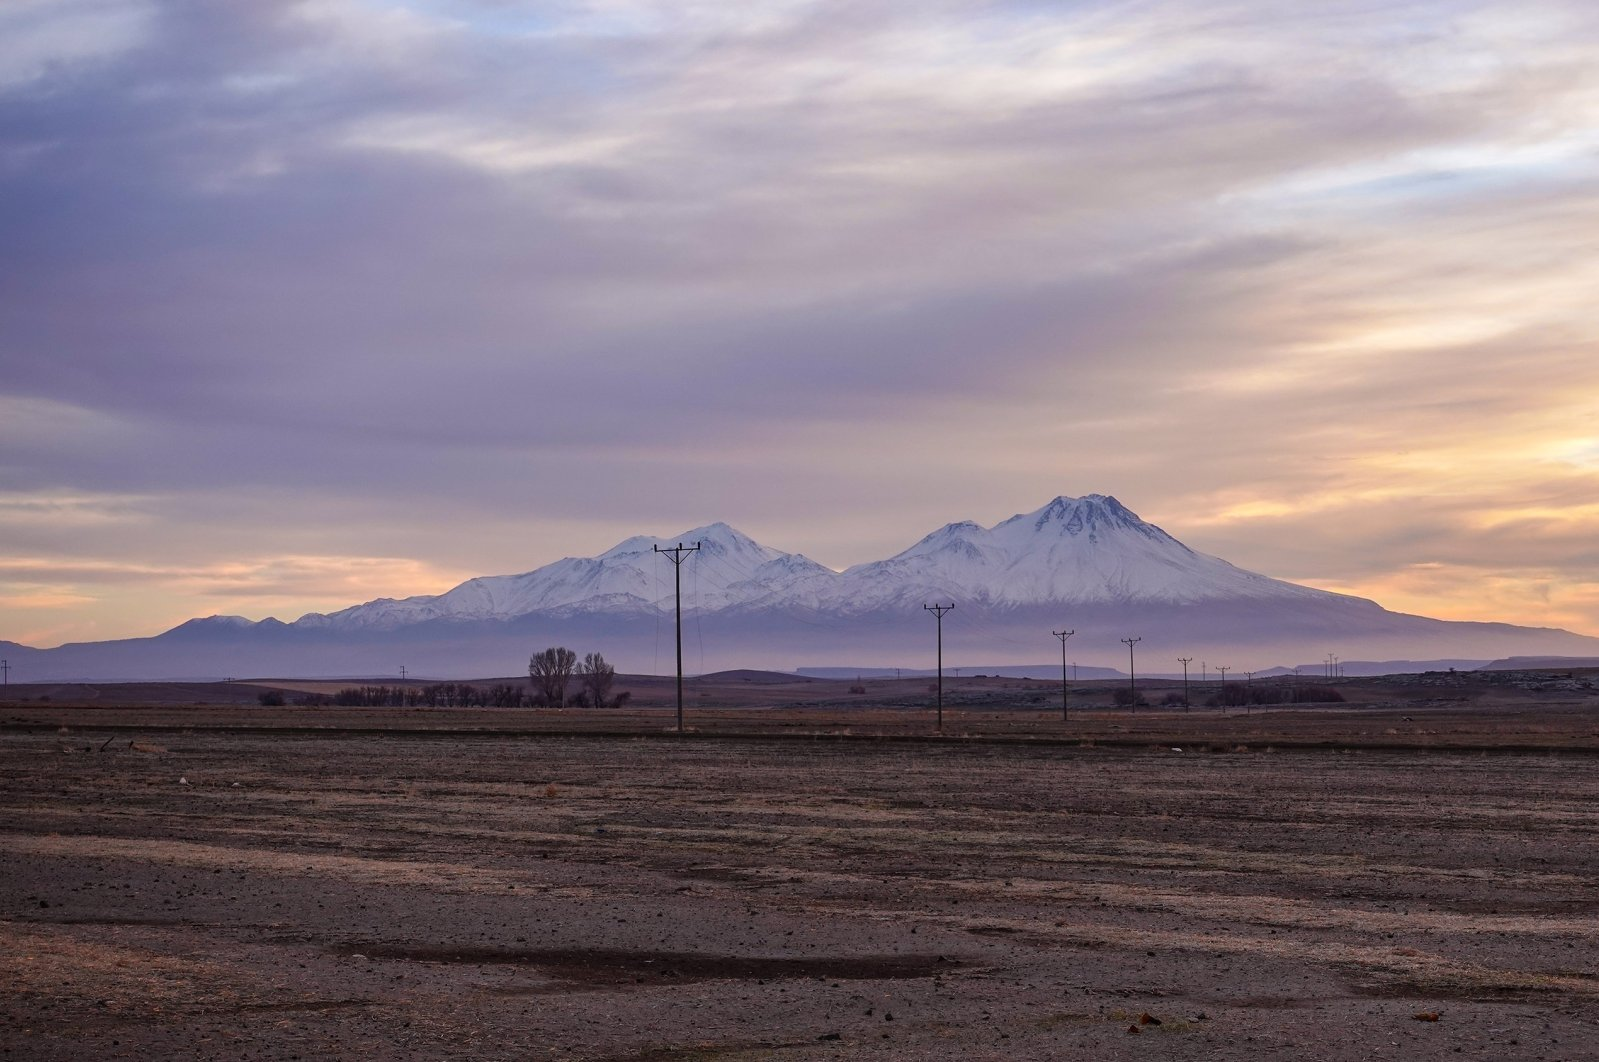 The dormant Mount Hasan is seen at sunset from Aksaray, central Turkey. (Photo by Argun Konuk)